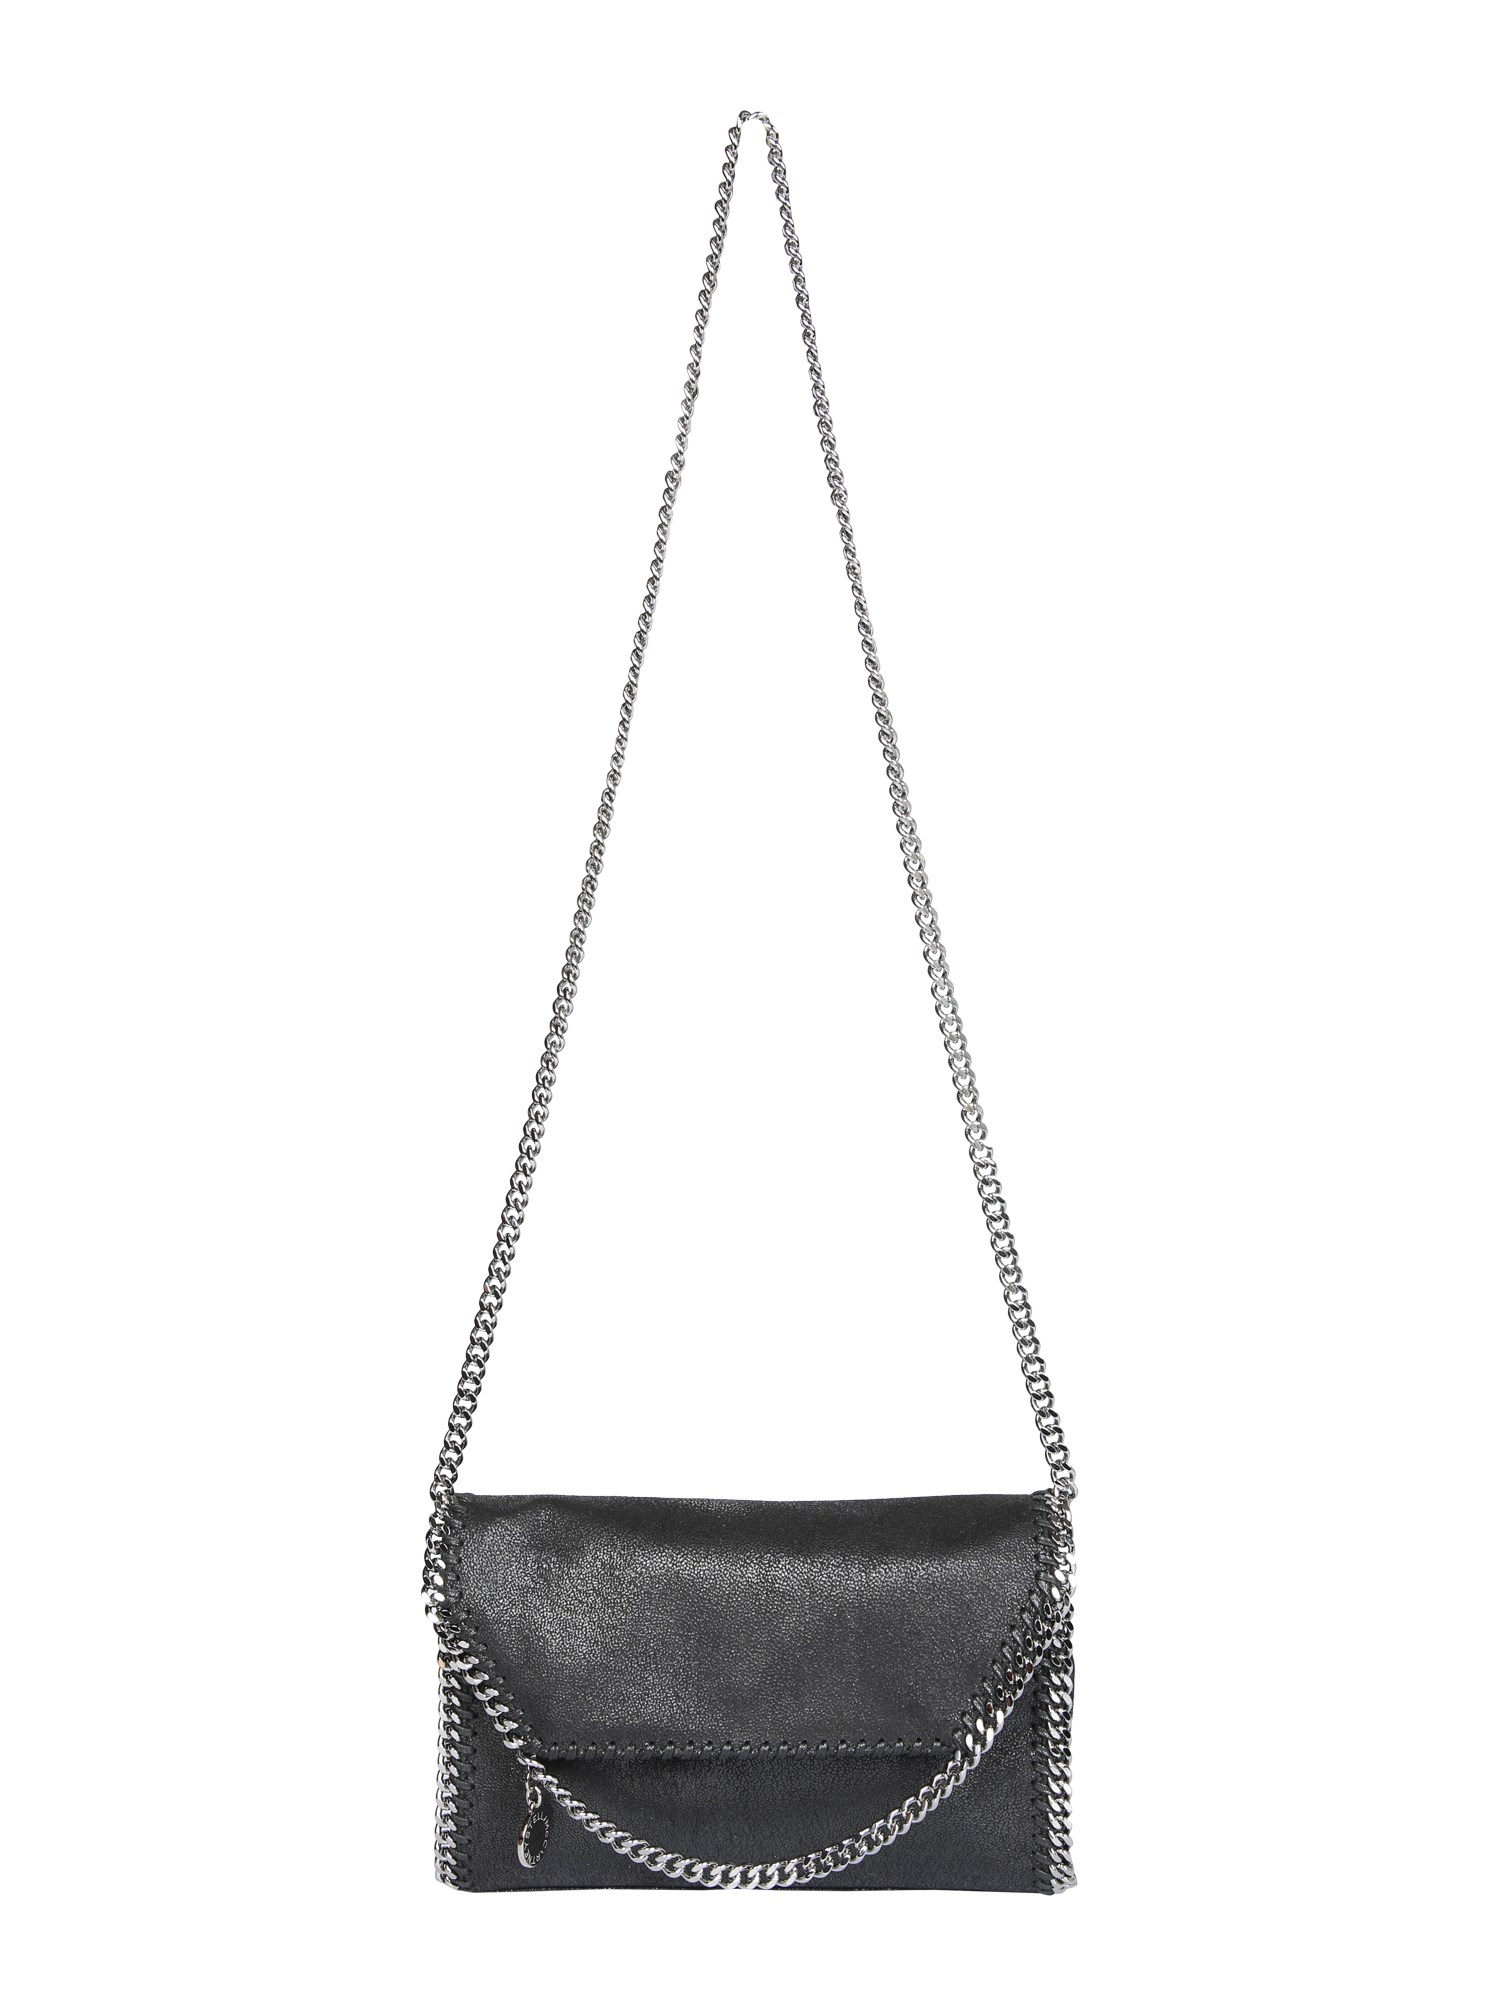 Stella Mccartney BORSA FALABELLA MINI